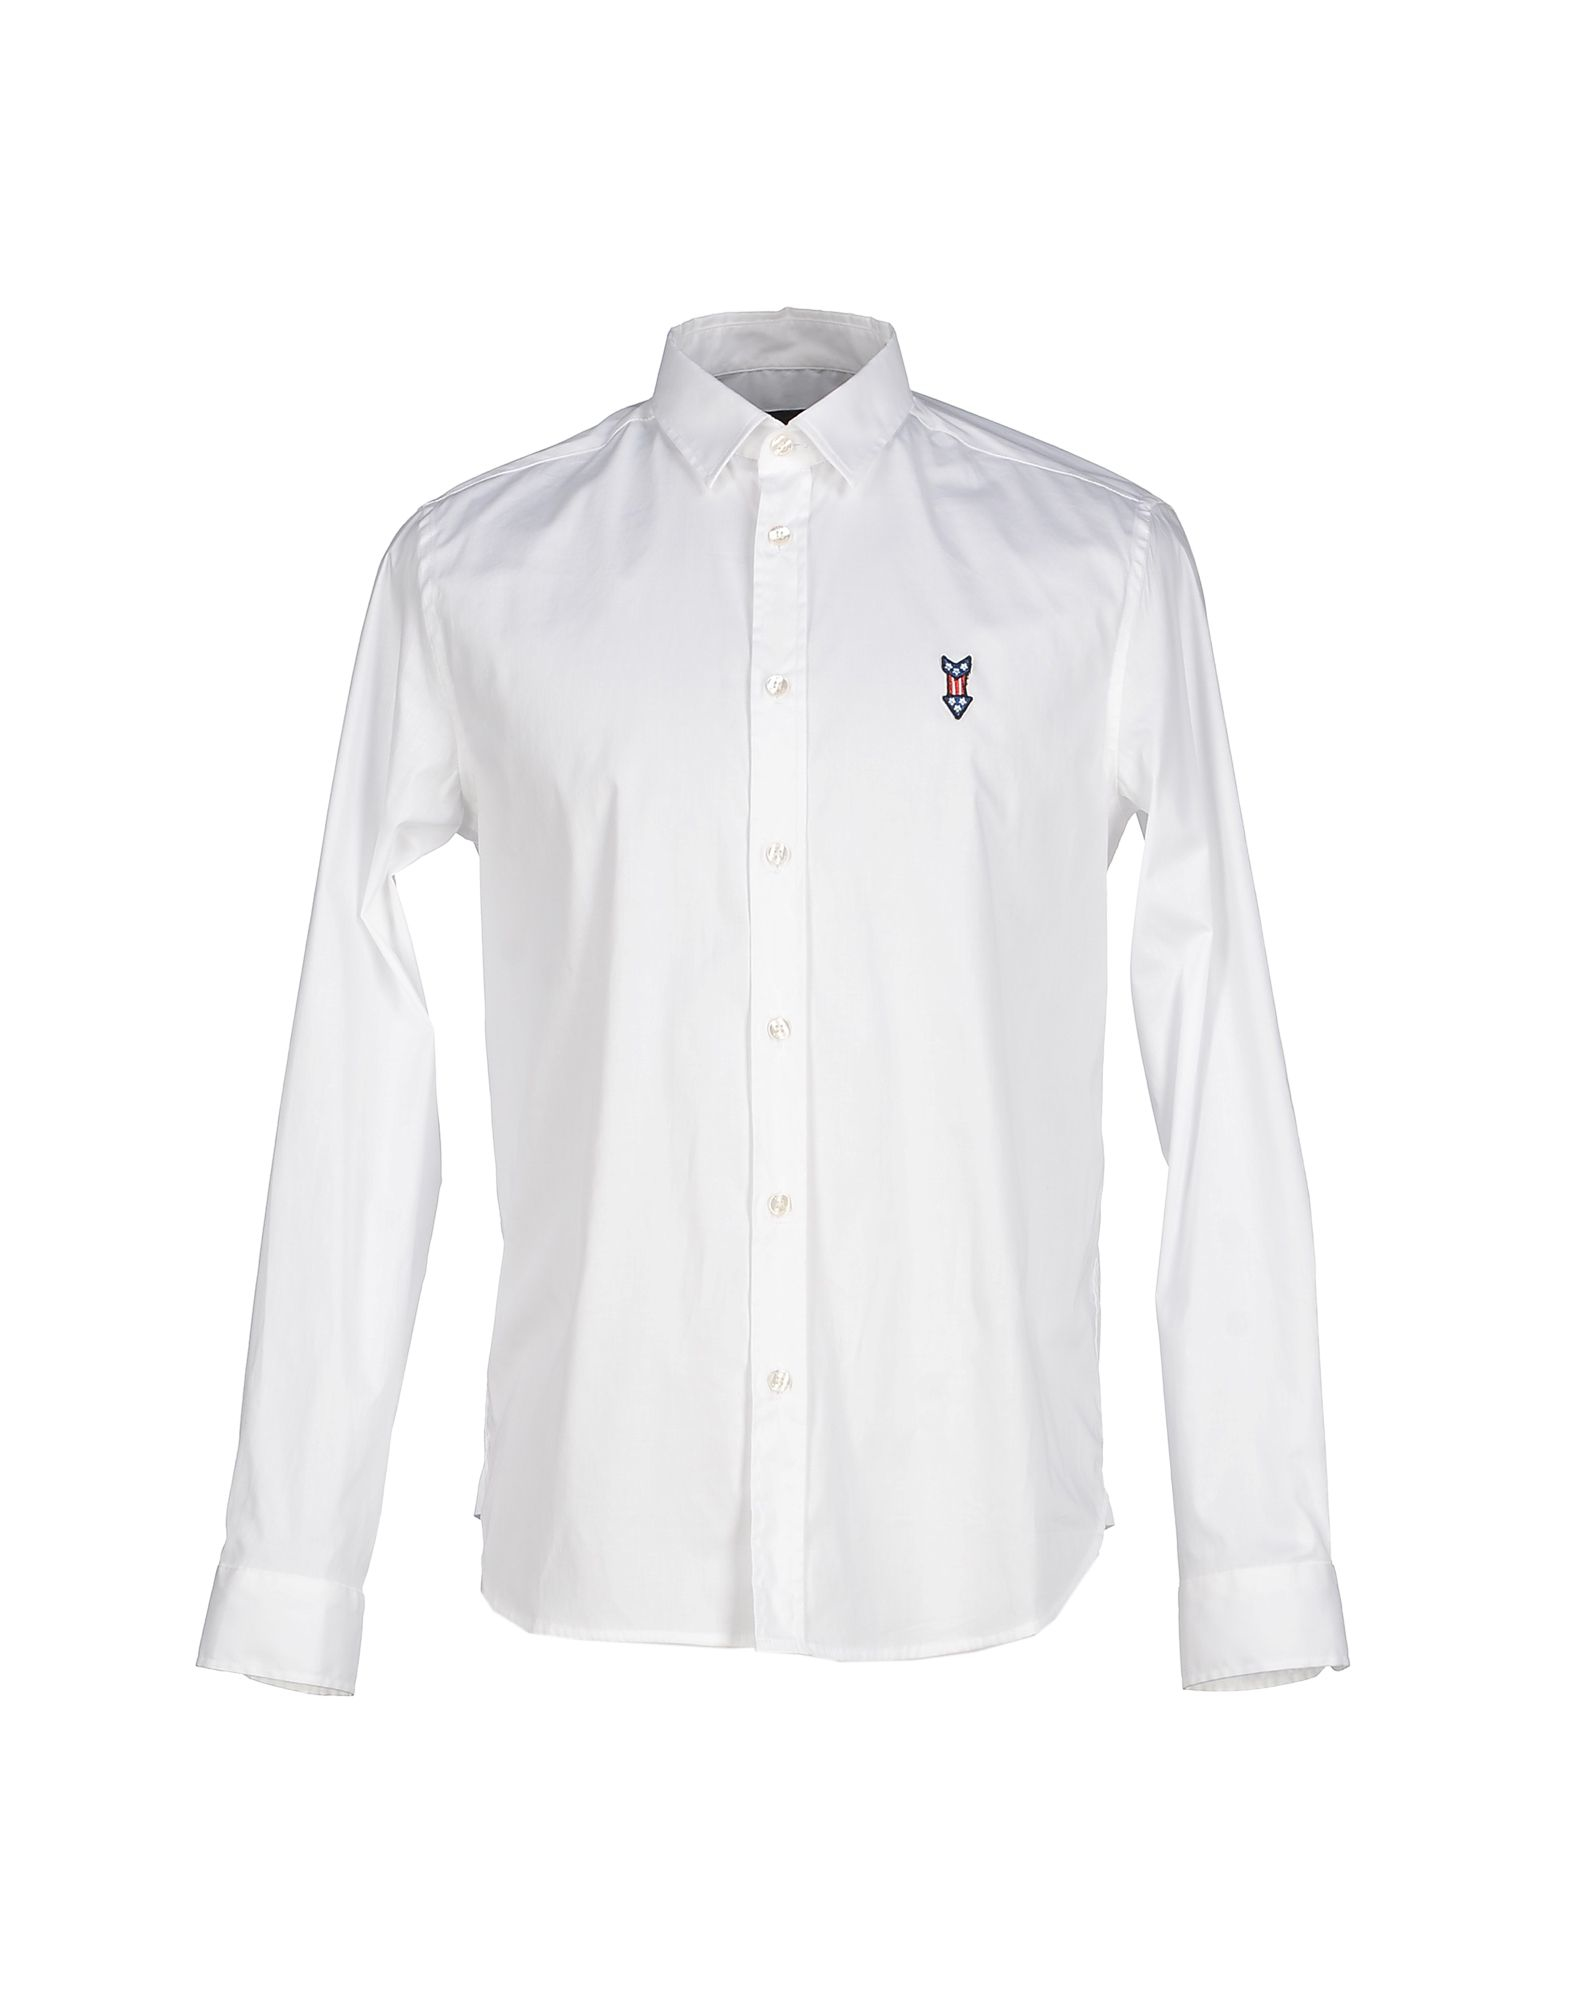 lyst love moschino shirt in white for men